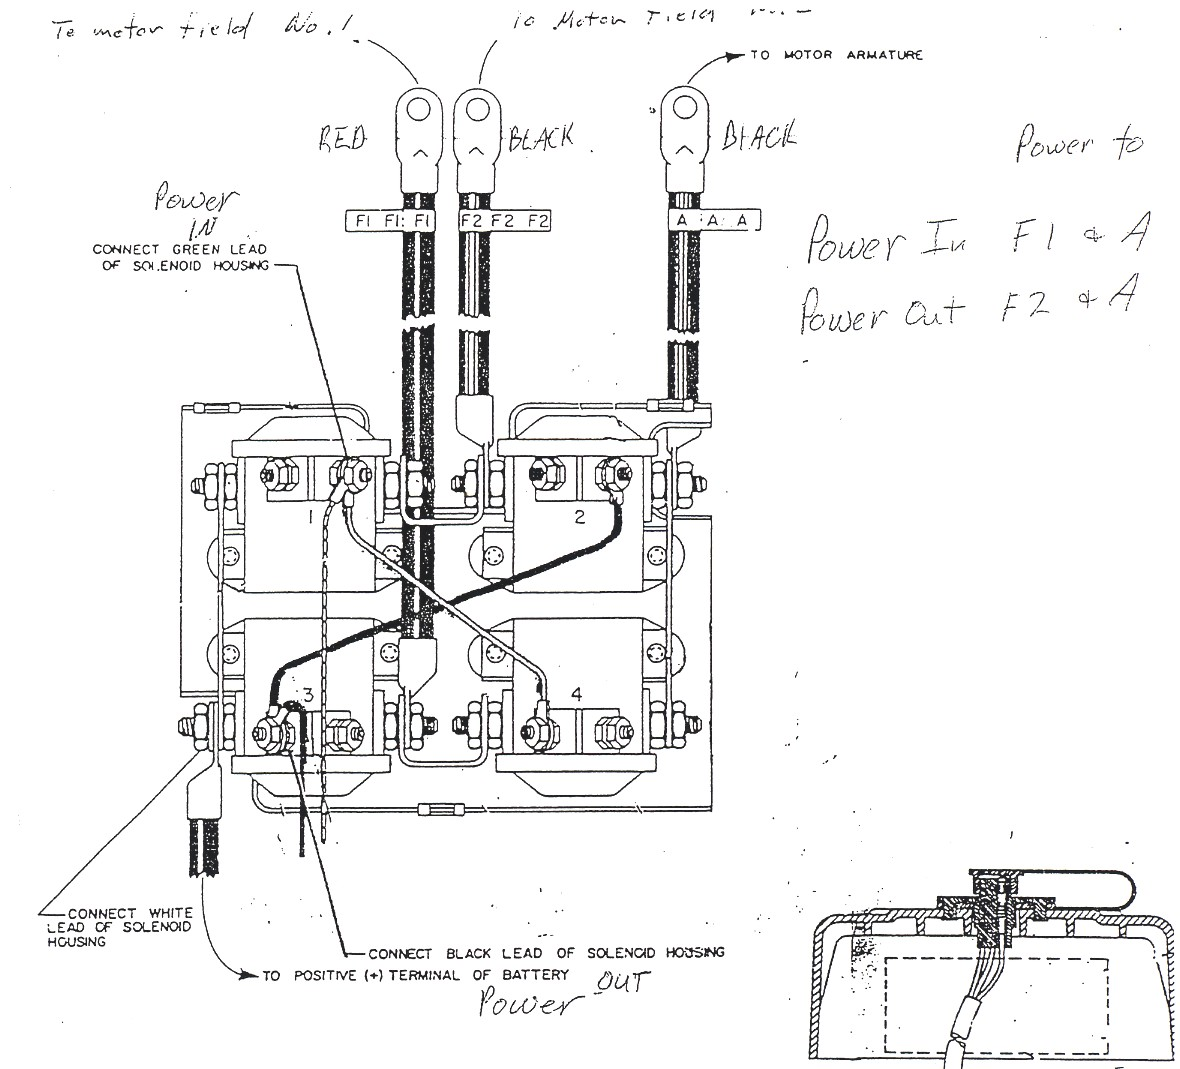 winch wiring diagram 4 solenoids 3d origami in english warn remote control get free image